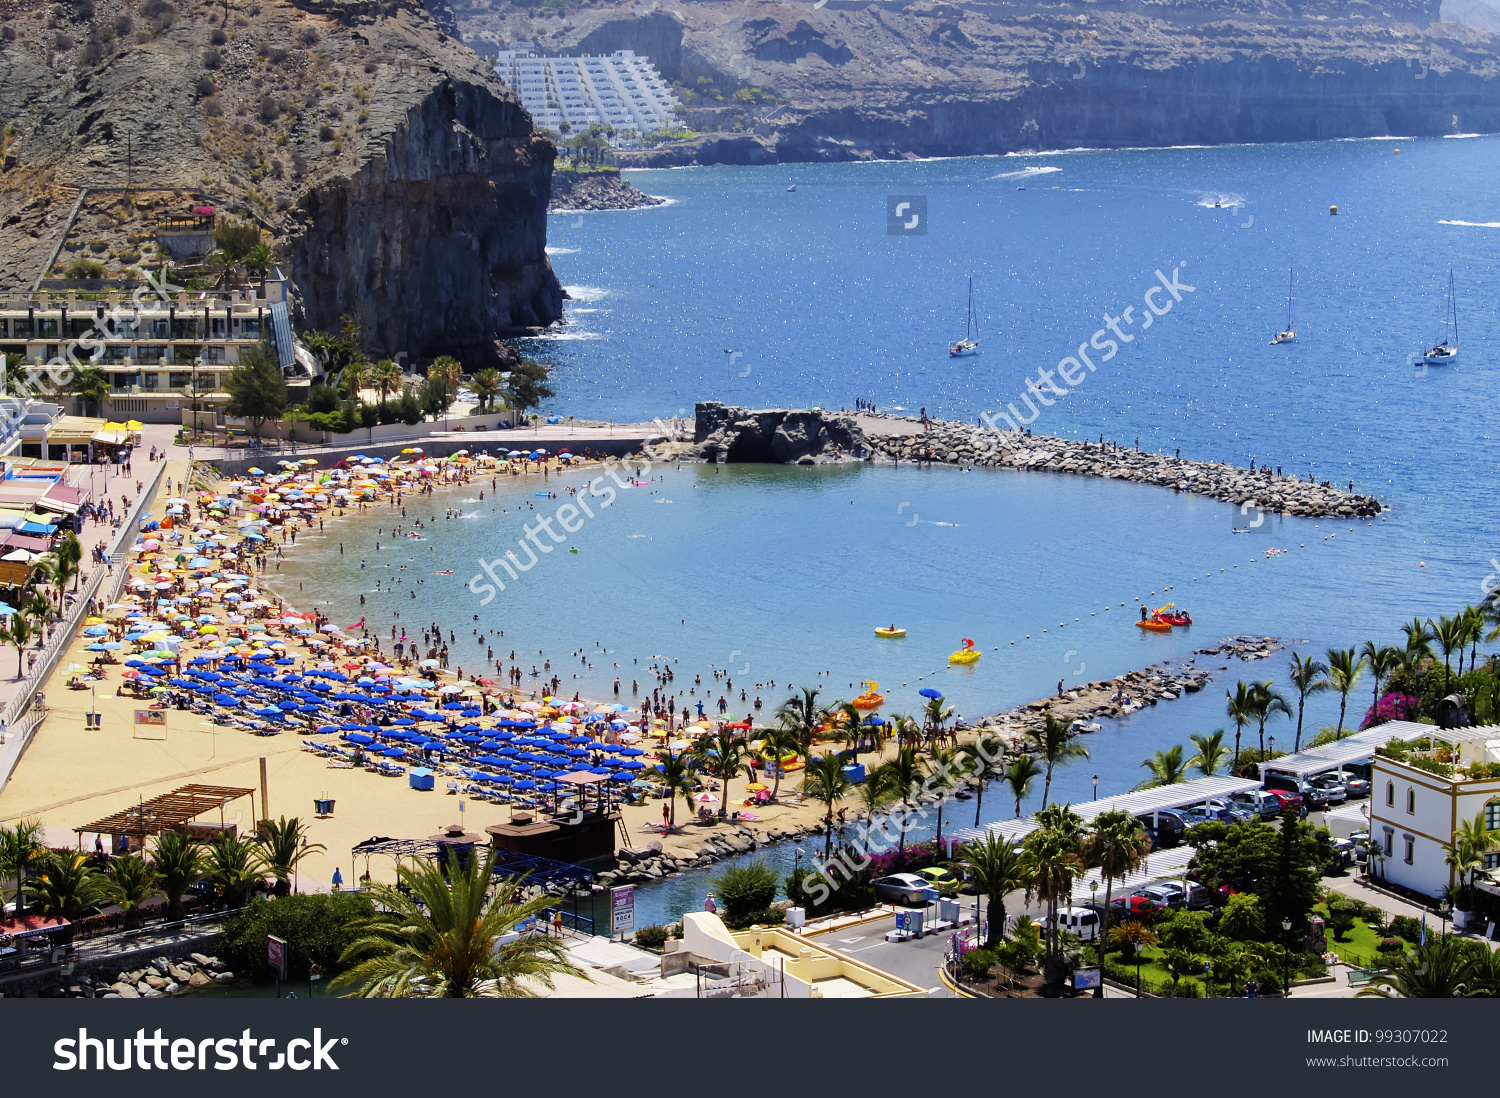 Puerto Mogan Gran Canaria Canary Islands Stock Photo 99307022.